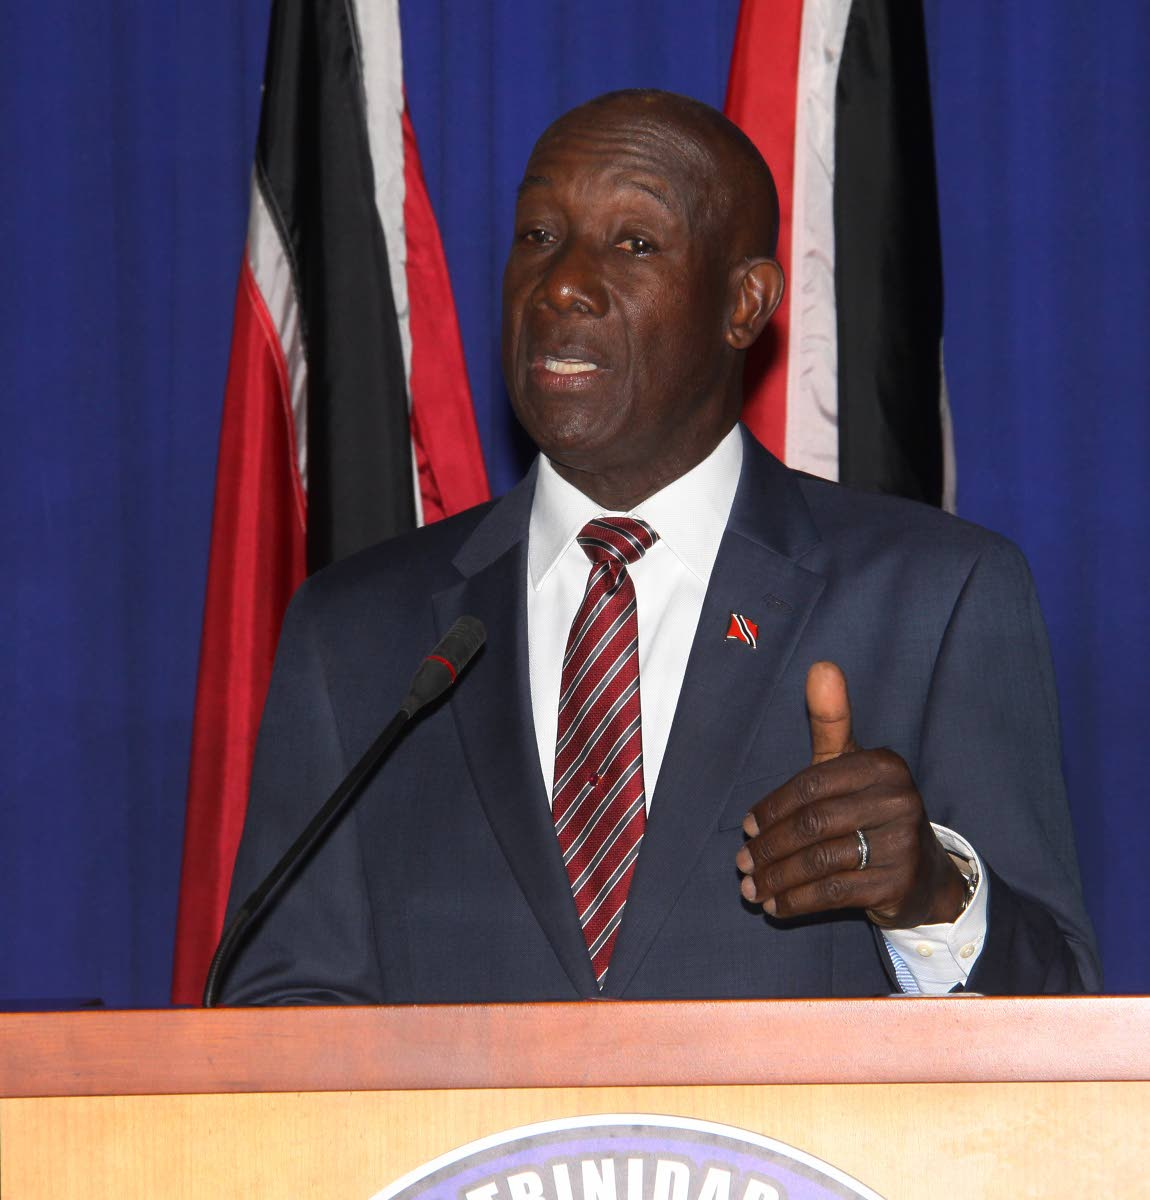 WARNING: Prime Minister Dr Keith Rowley speaking at yesterday's news conference at the Office of the Prime Minister in St Clair.  PHOTO BY ANGELO M MARCELLE